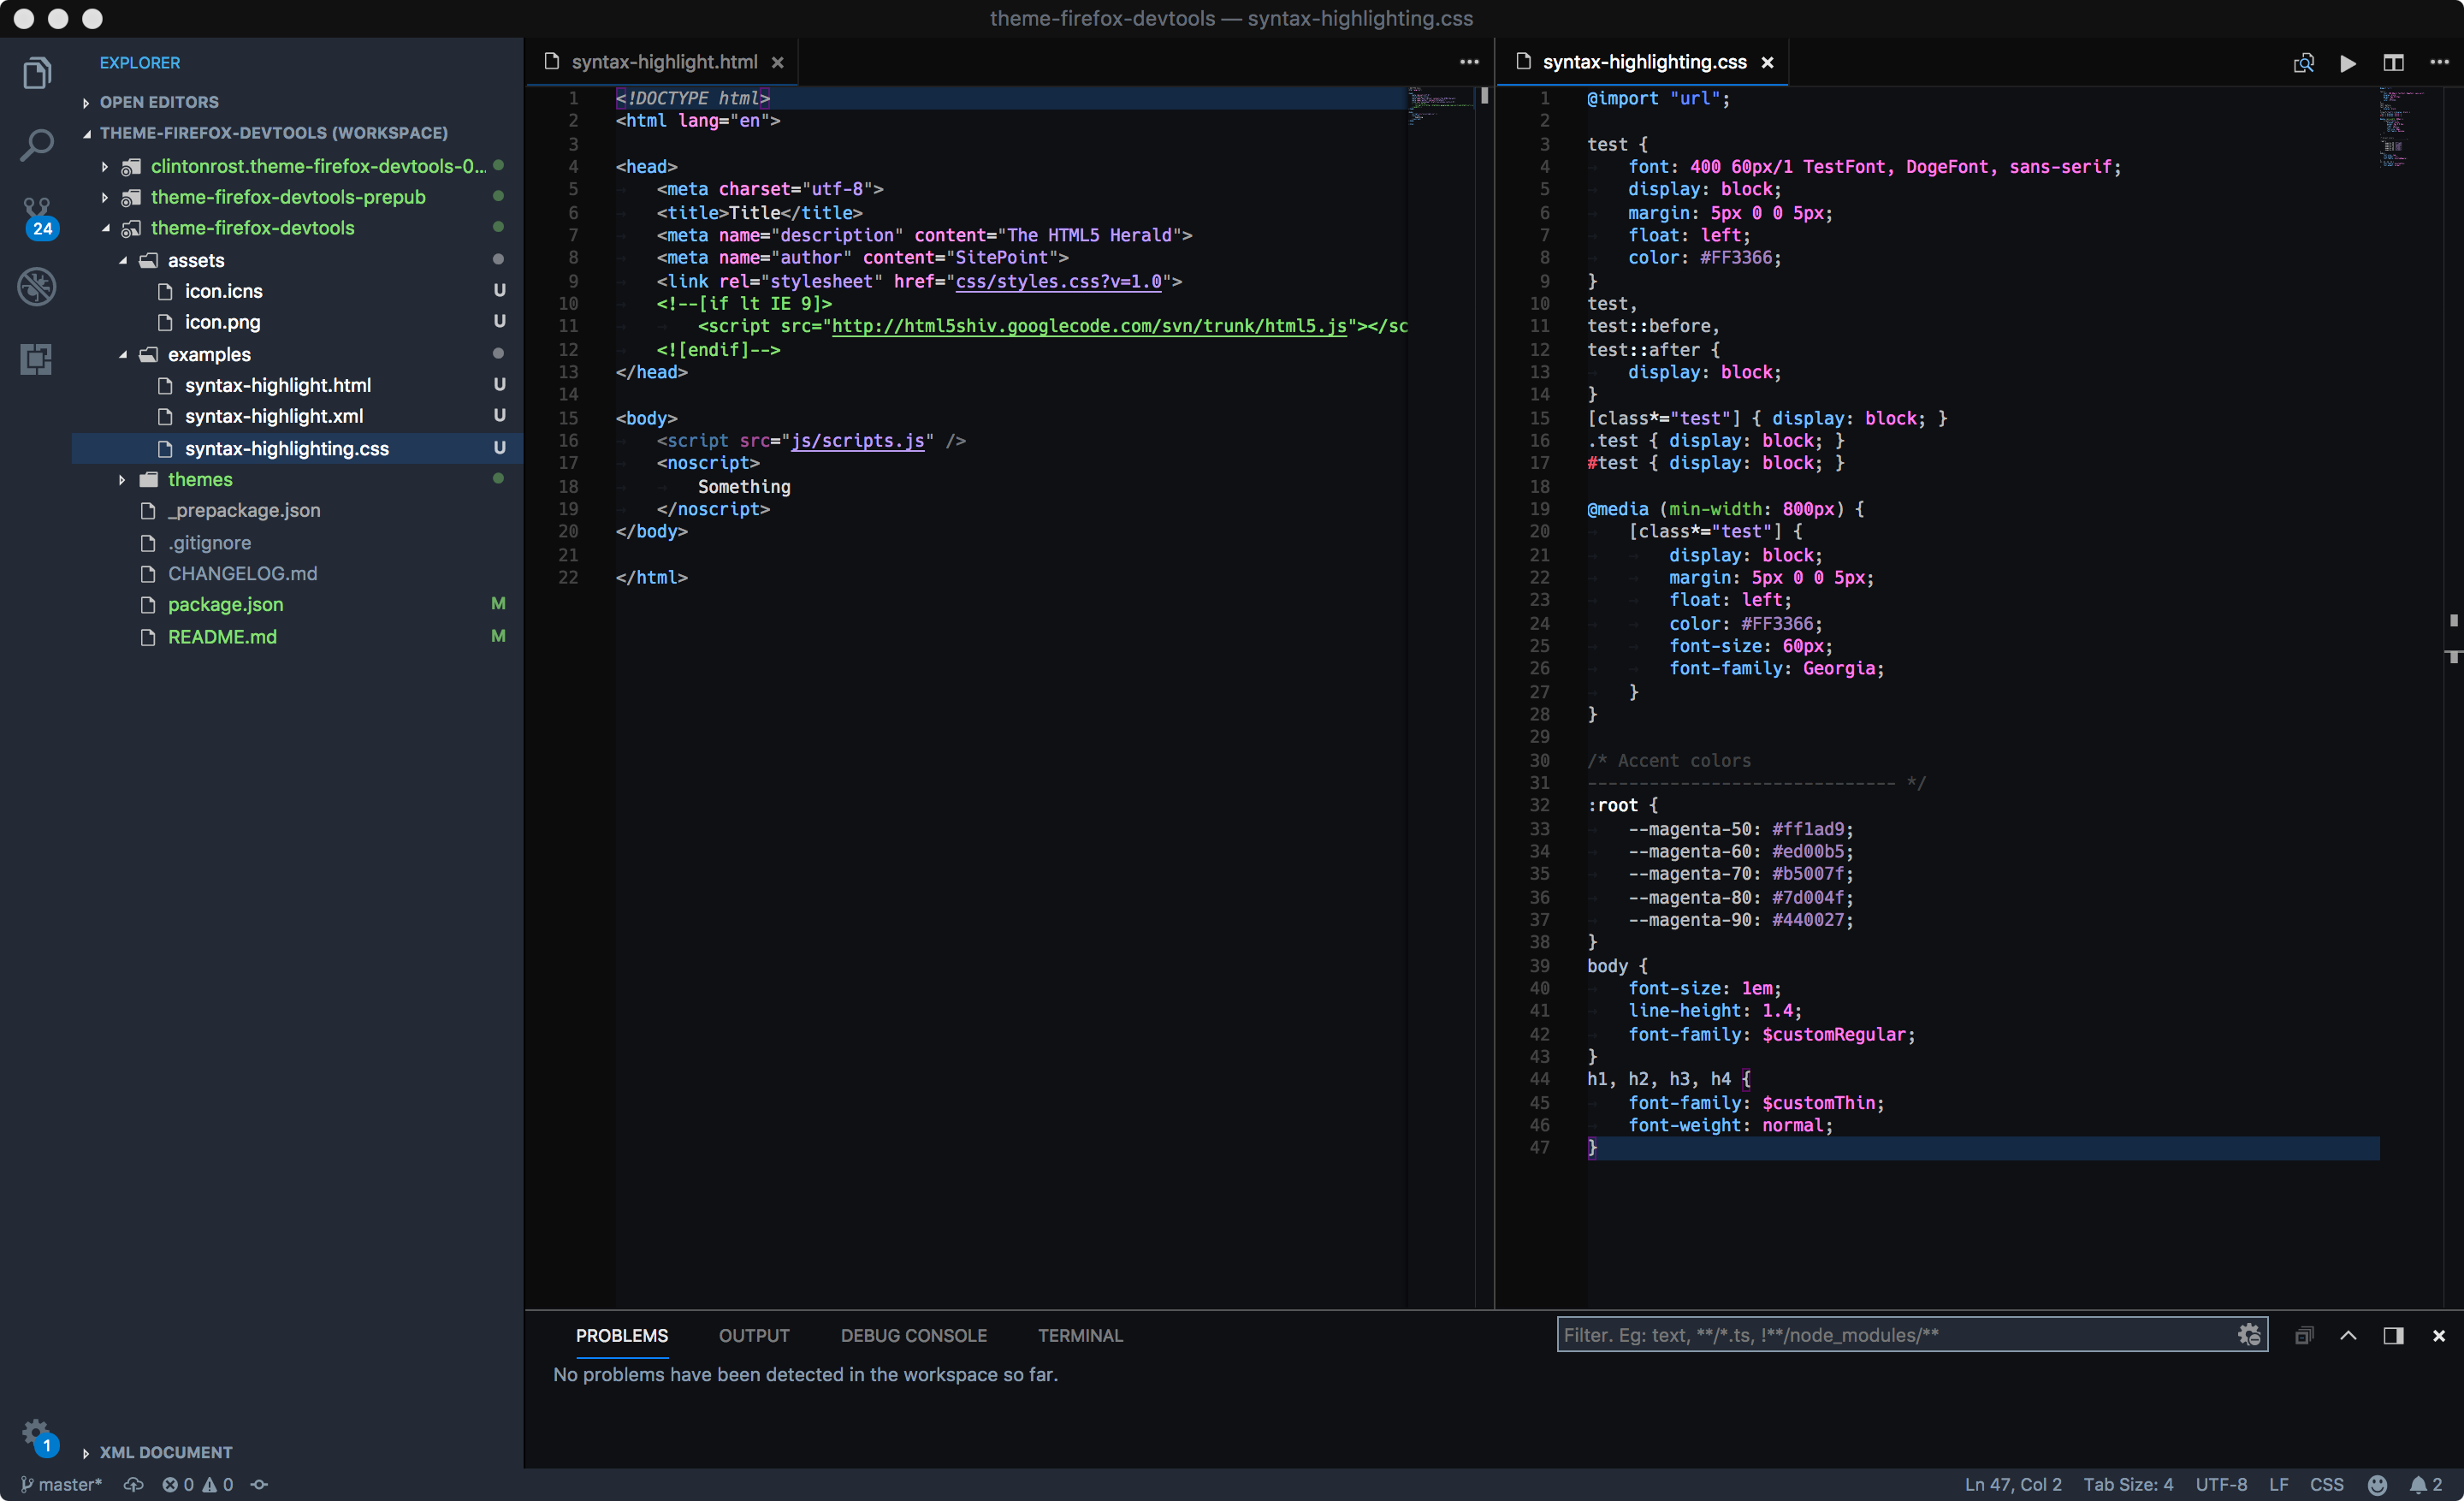 Firefox DevTools Theme screenshot